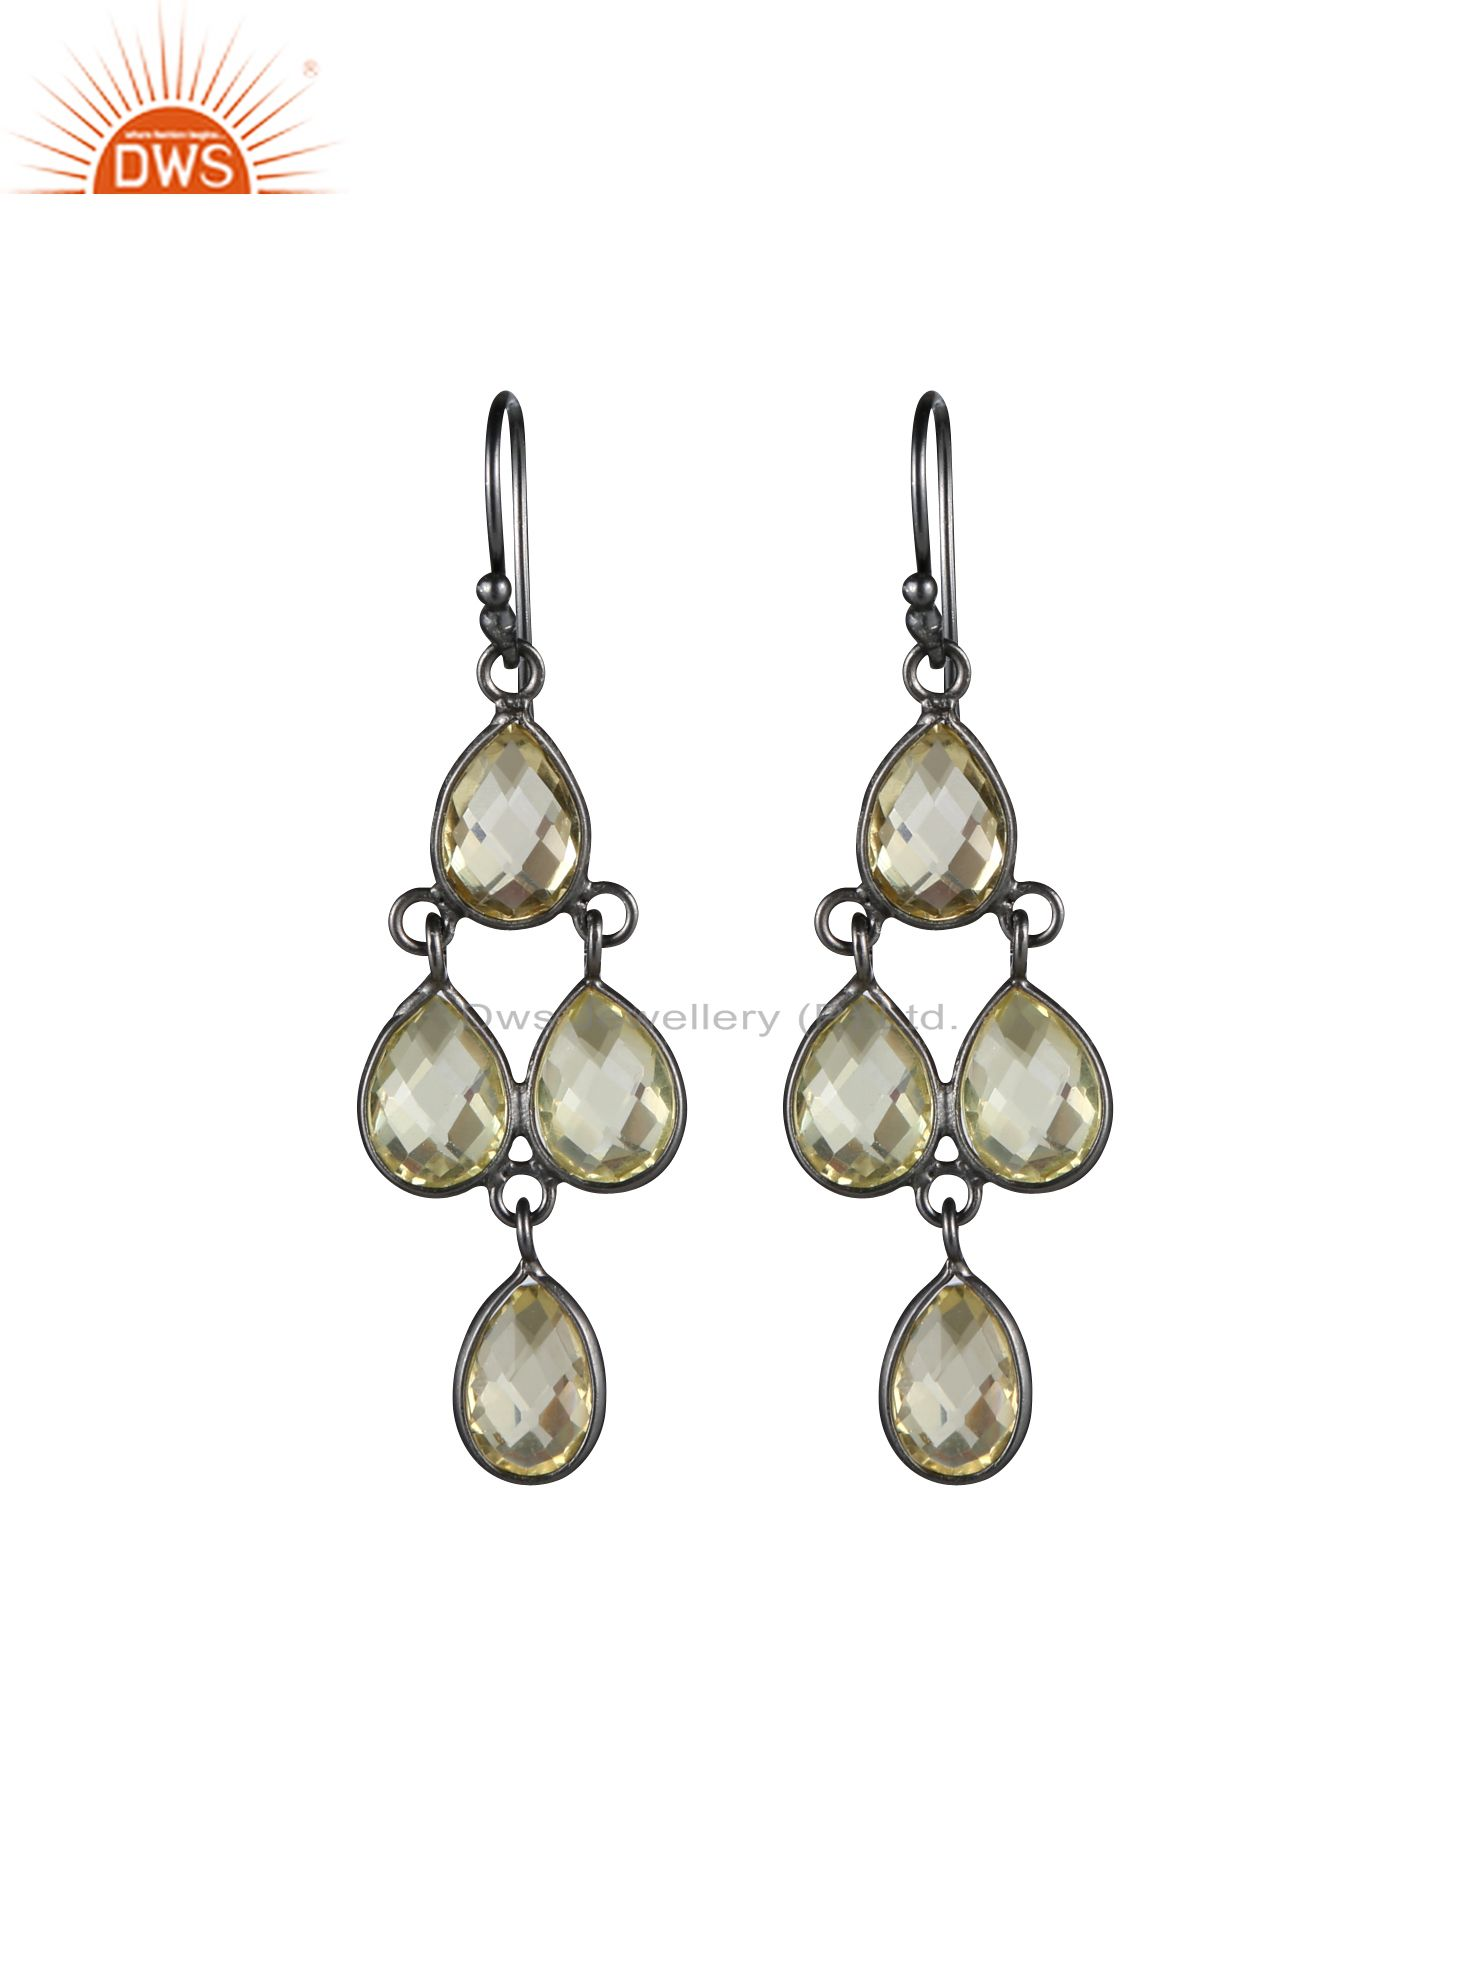 Oxidized Solid Sterling Silver Lemon Topaz Bezel Set Dangle Earrings